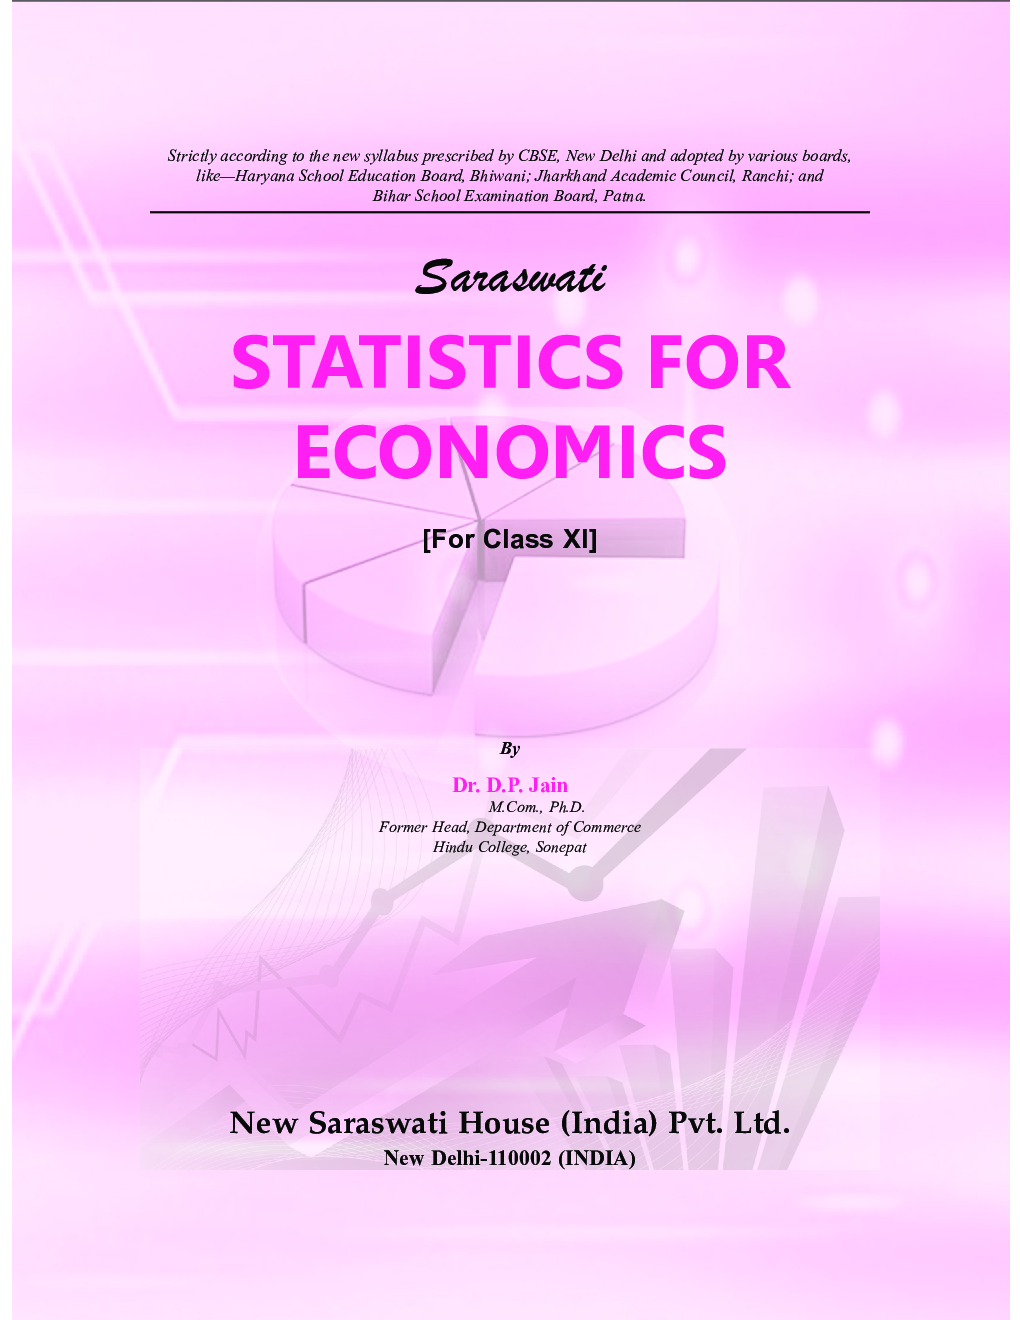 Statistics for Economics For Class XI - Page 2